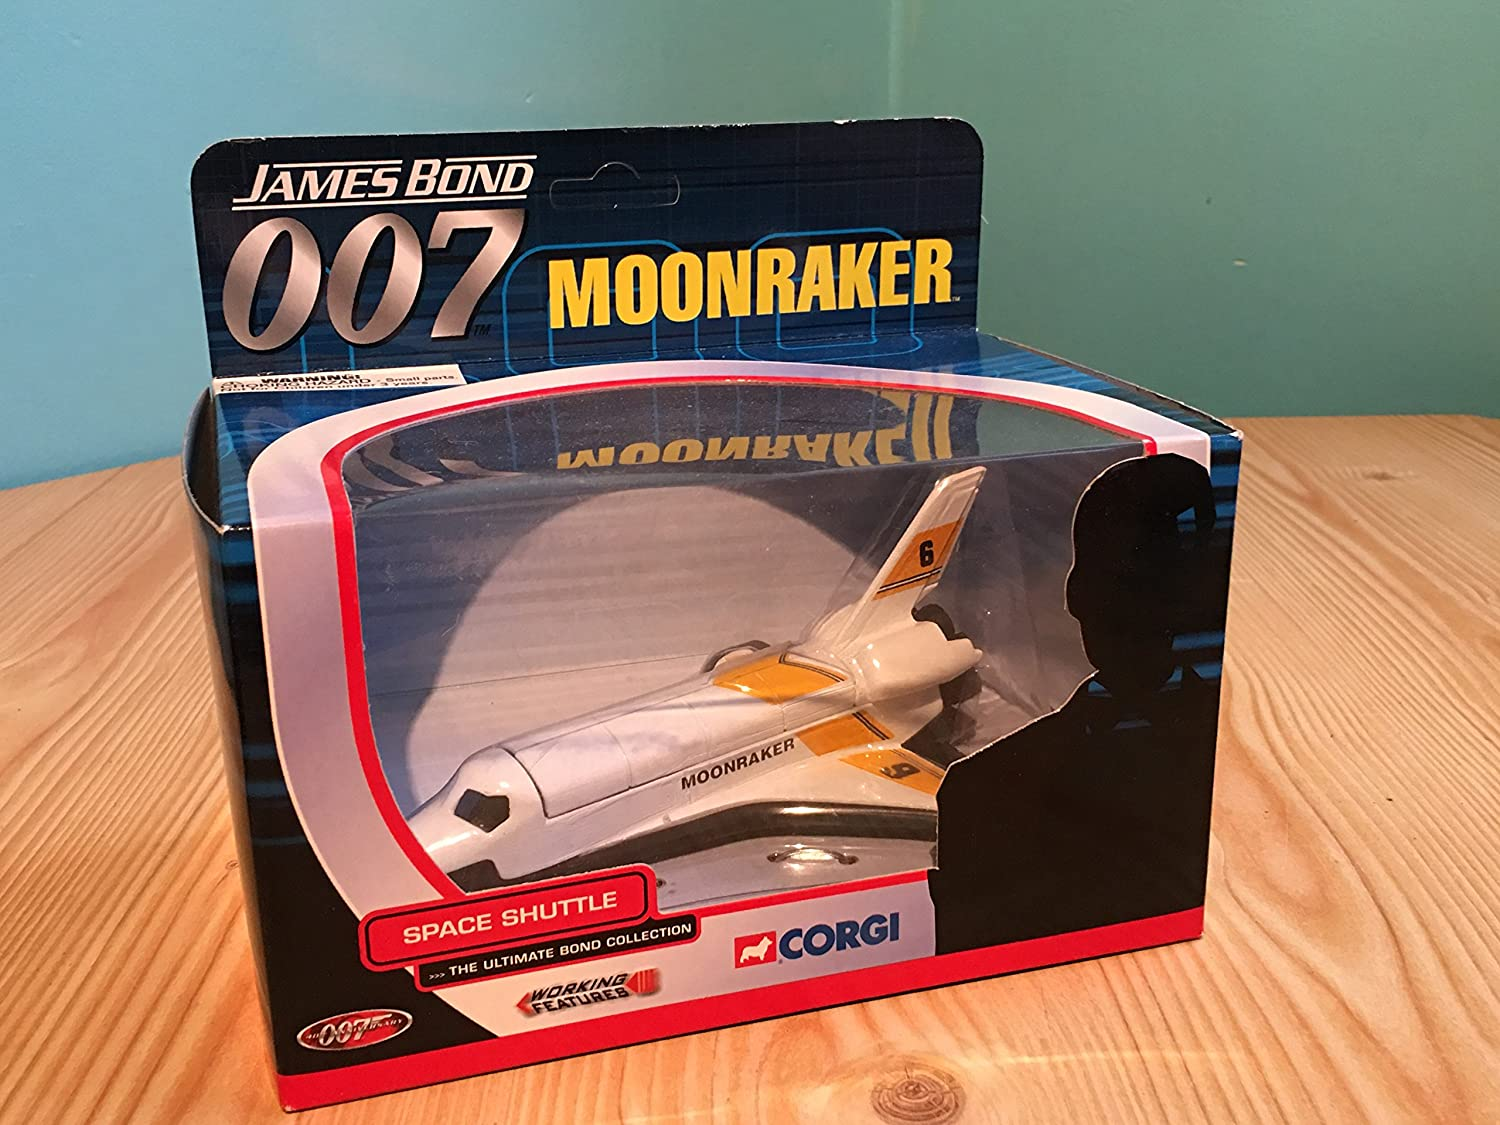 Amazon.com: Corgi - James Bond - 007 James Bond 007 Moonraker Space Shuttle: Toys & Games